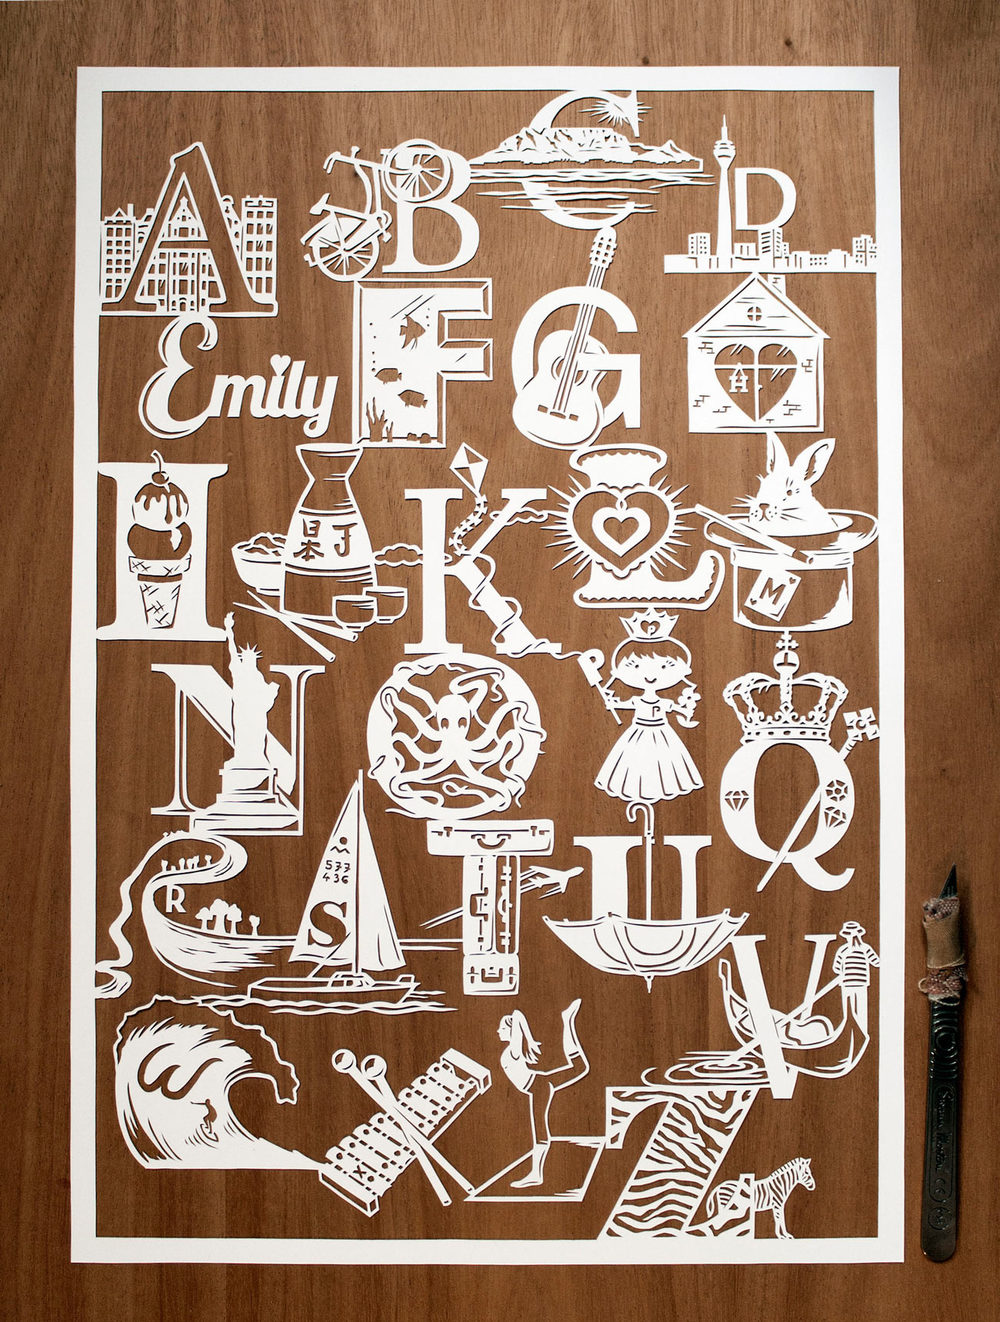 papercut illustration of alphabet love story intricate